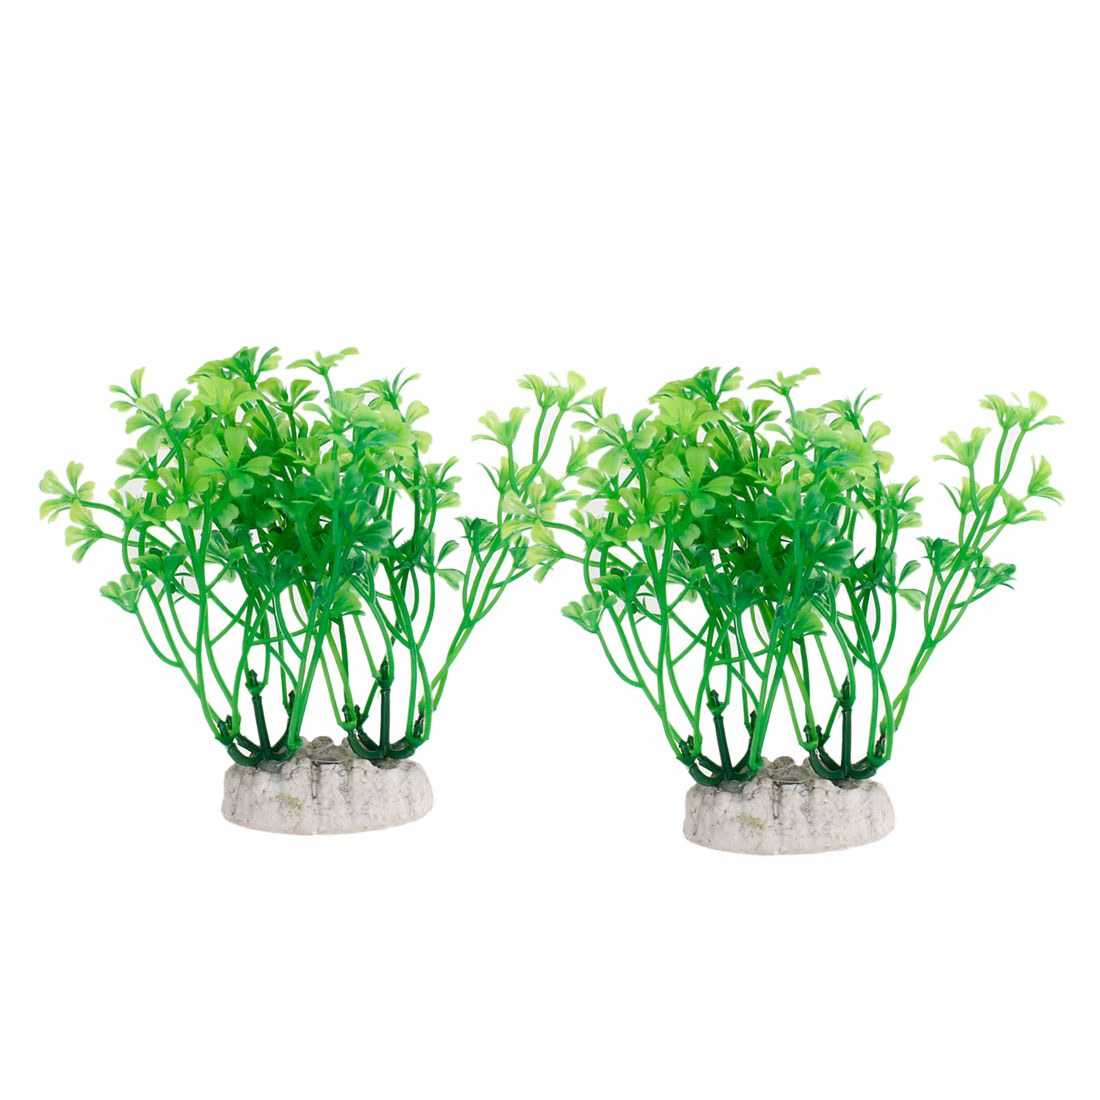 2pcs Ceramic Base Manmade Plastic 12.5cm High Grass Green for Fish Tank Aquarium